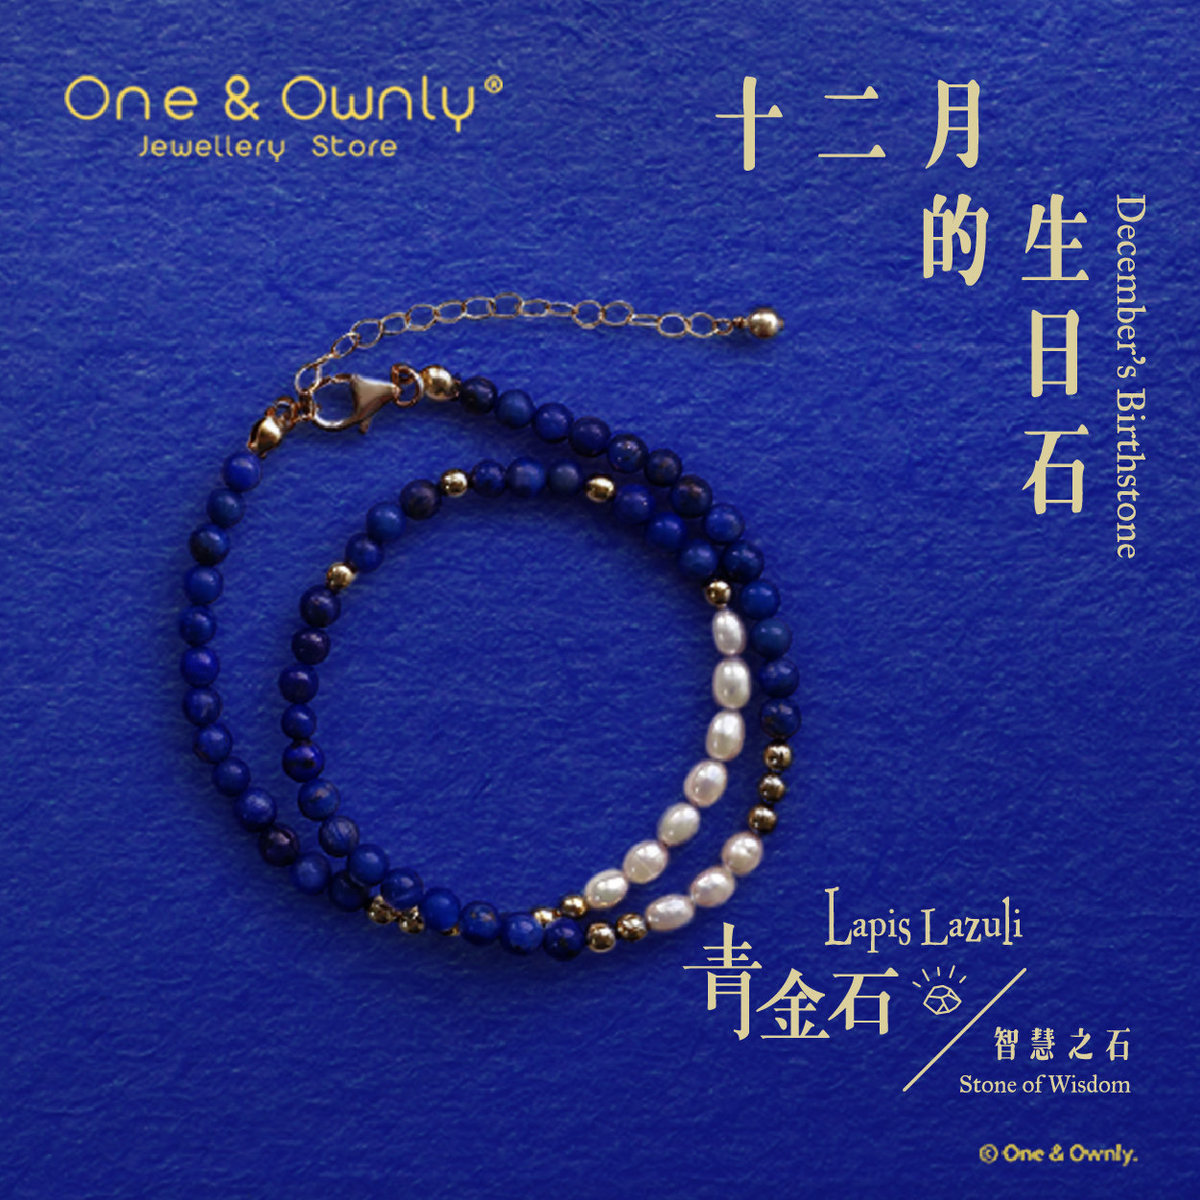 Starry Night- US 14K Gold Filled (1/20) with Lapis Lazuli & Fresh Water Pearl 2rows Bracelet